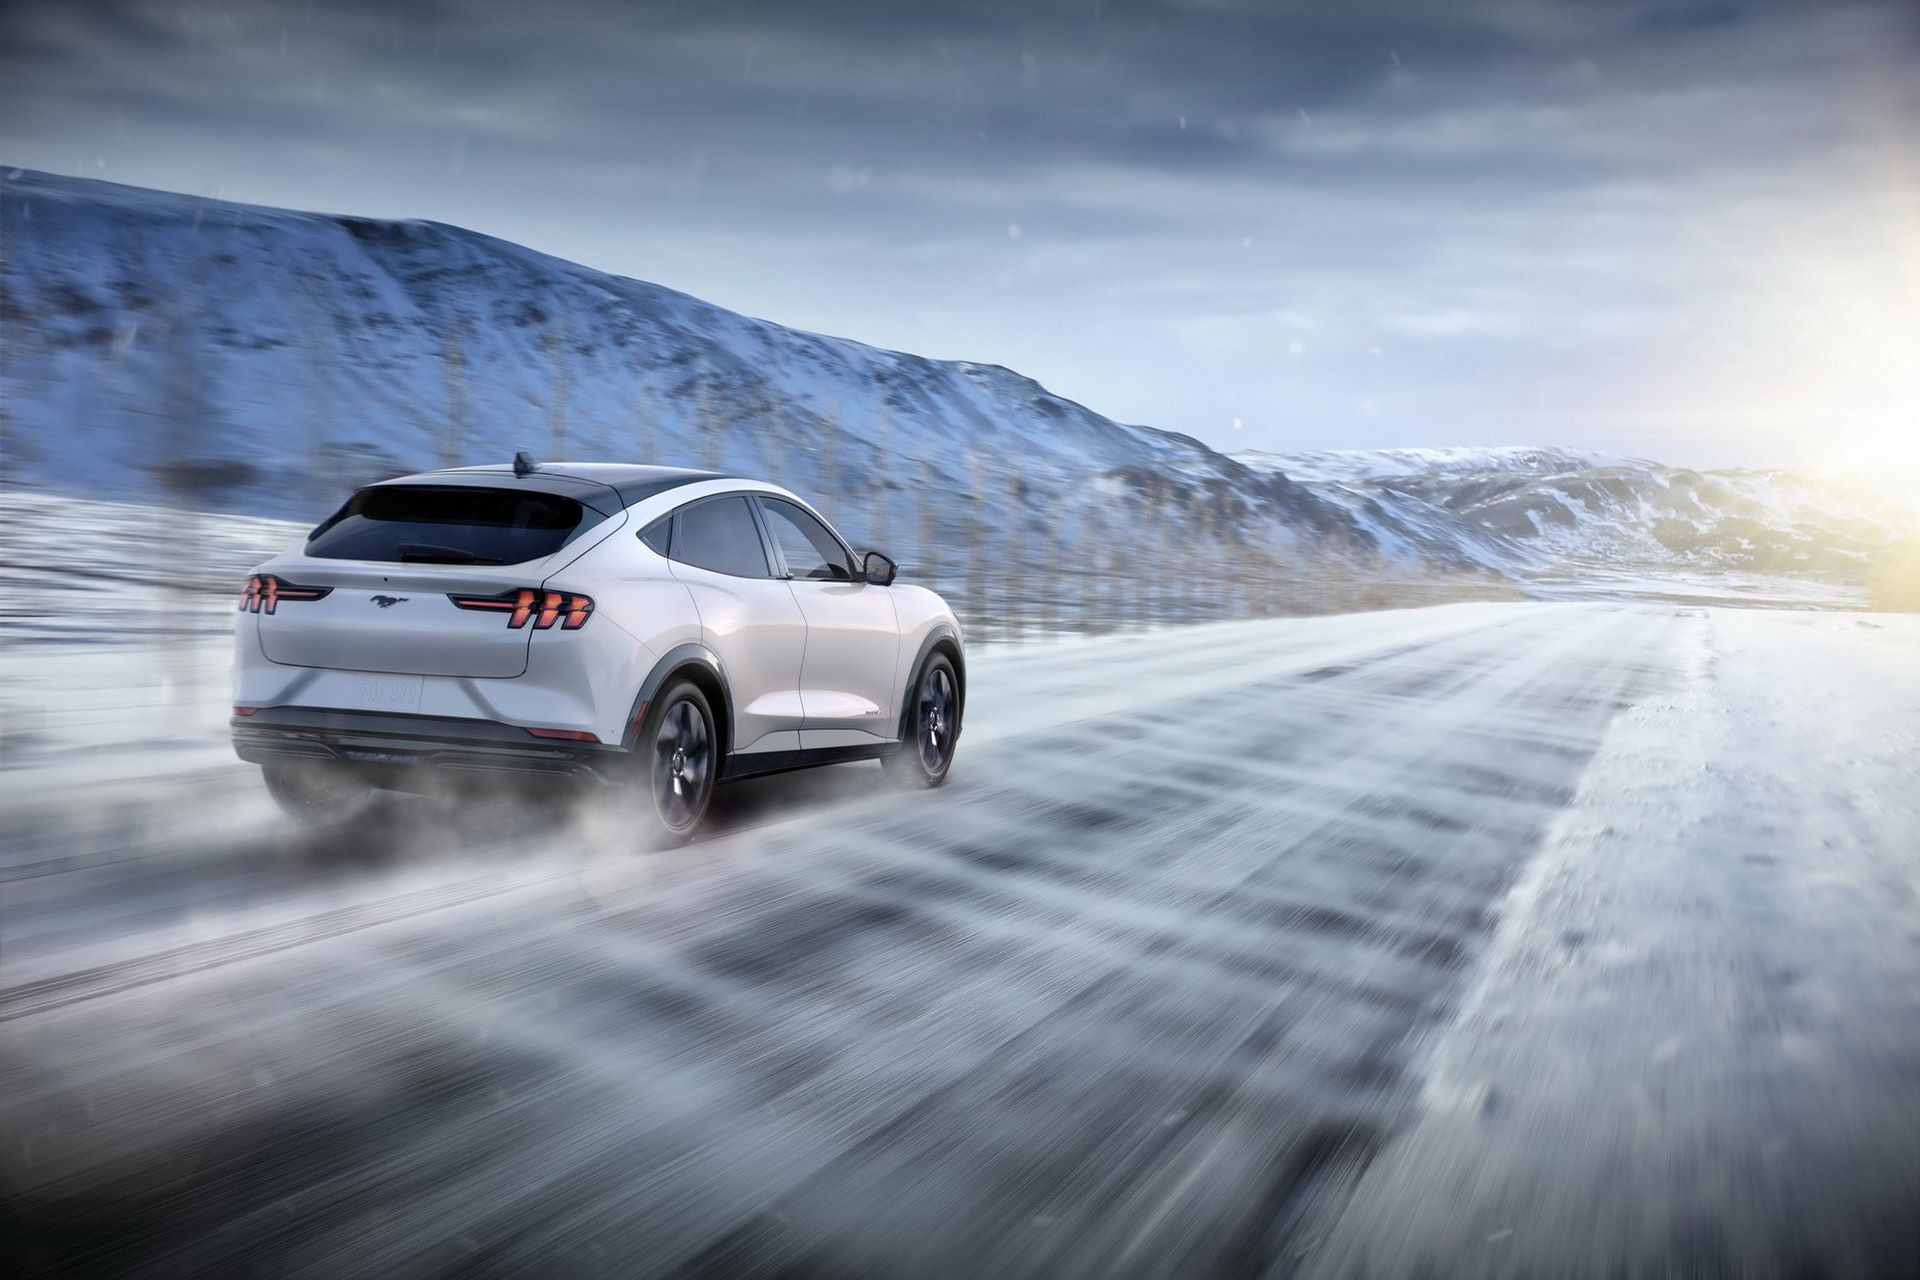 Ford-Mustang-Mach-E-19